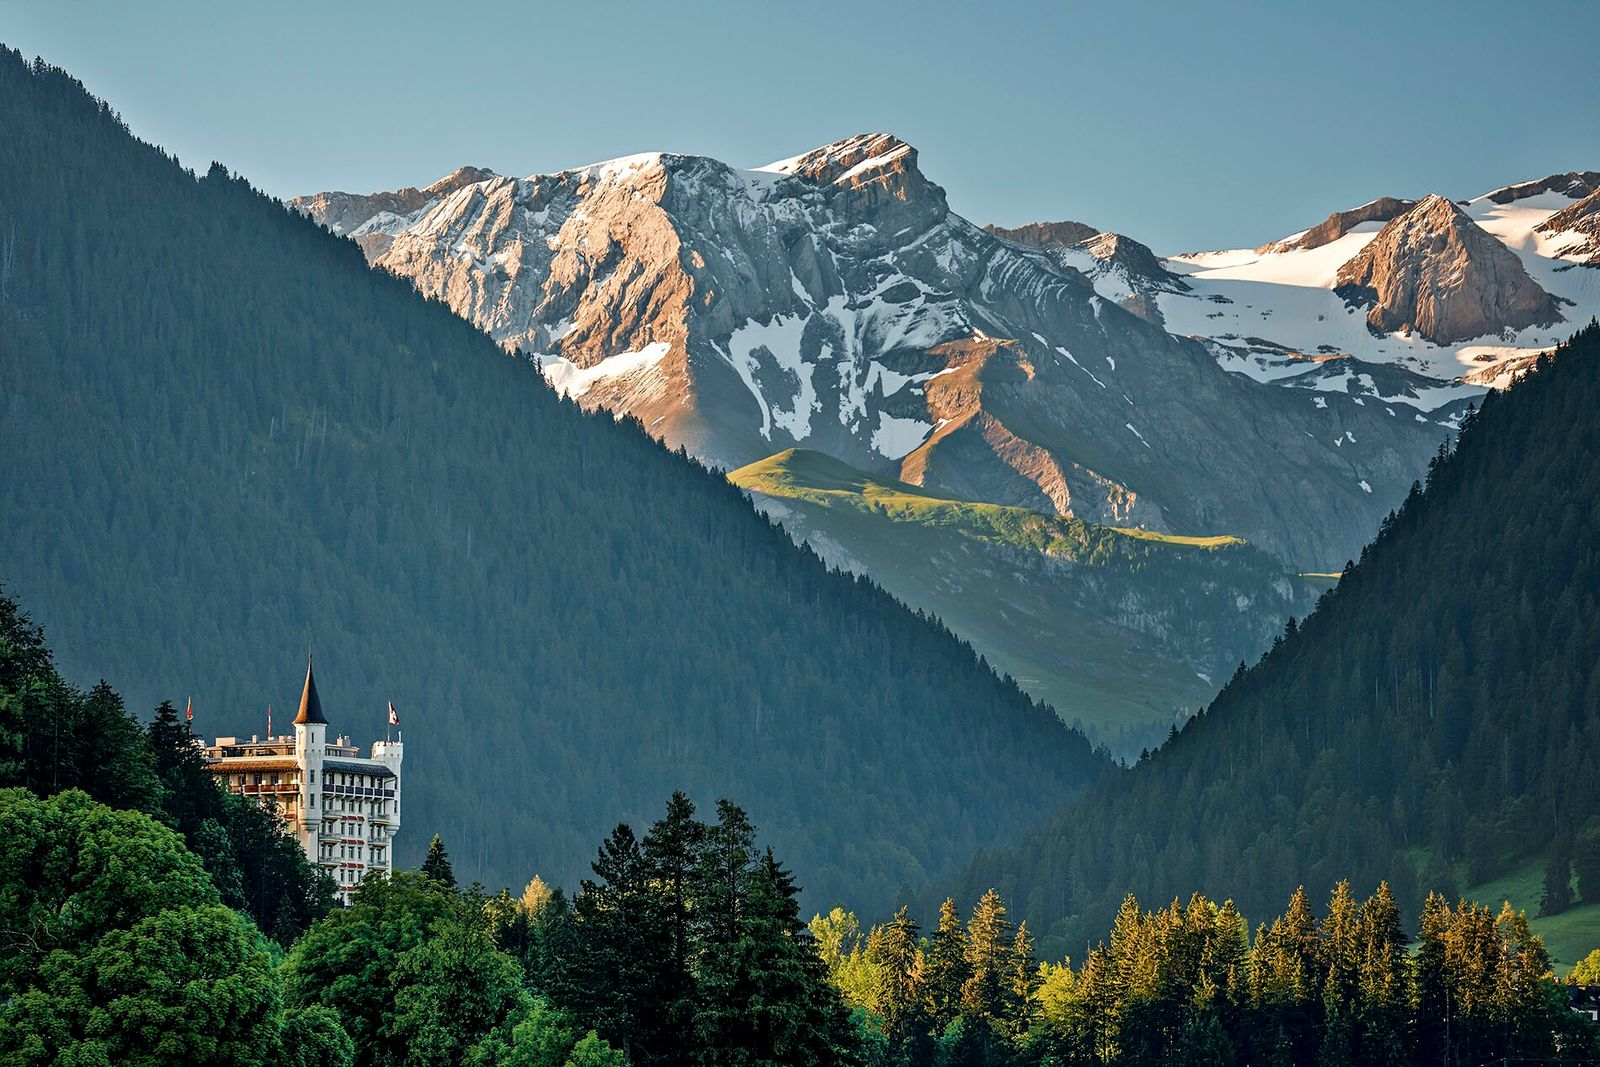 Gstaad is a picture-perfect village nestled in the Swiss Alps, known for its glitzy bars and designer ...